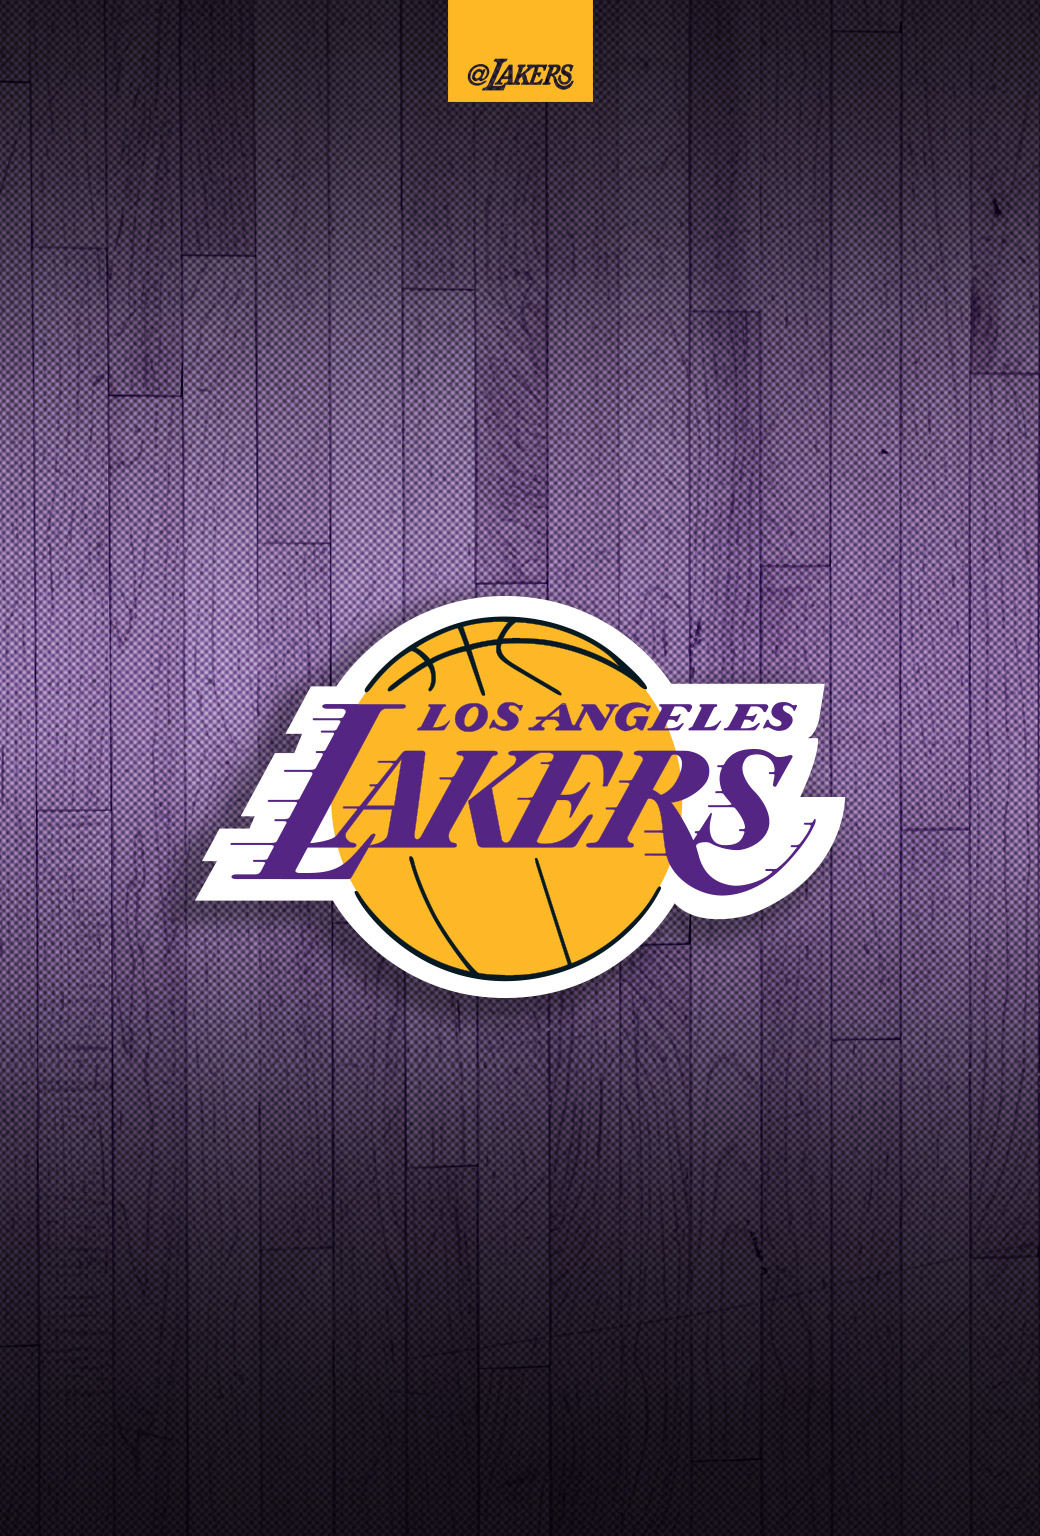 Lakers Wallpaper Iphone